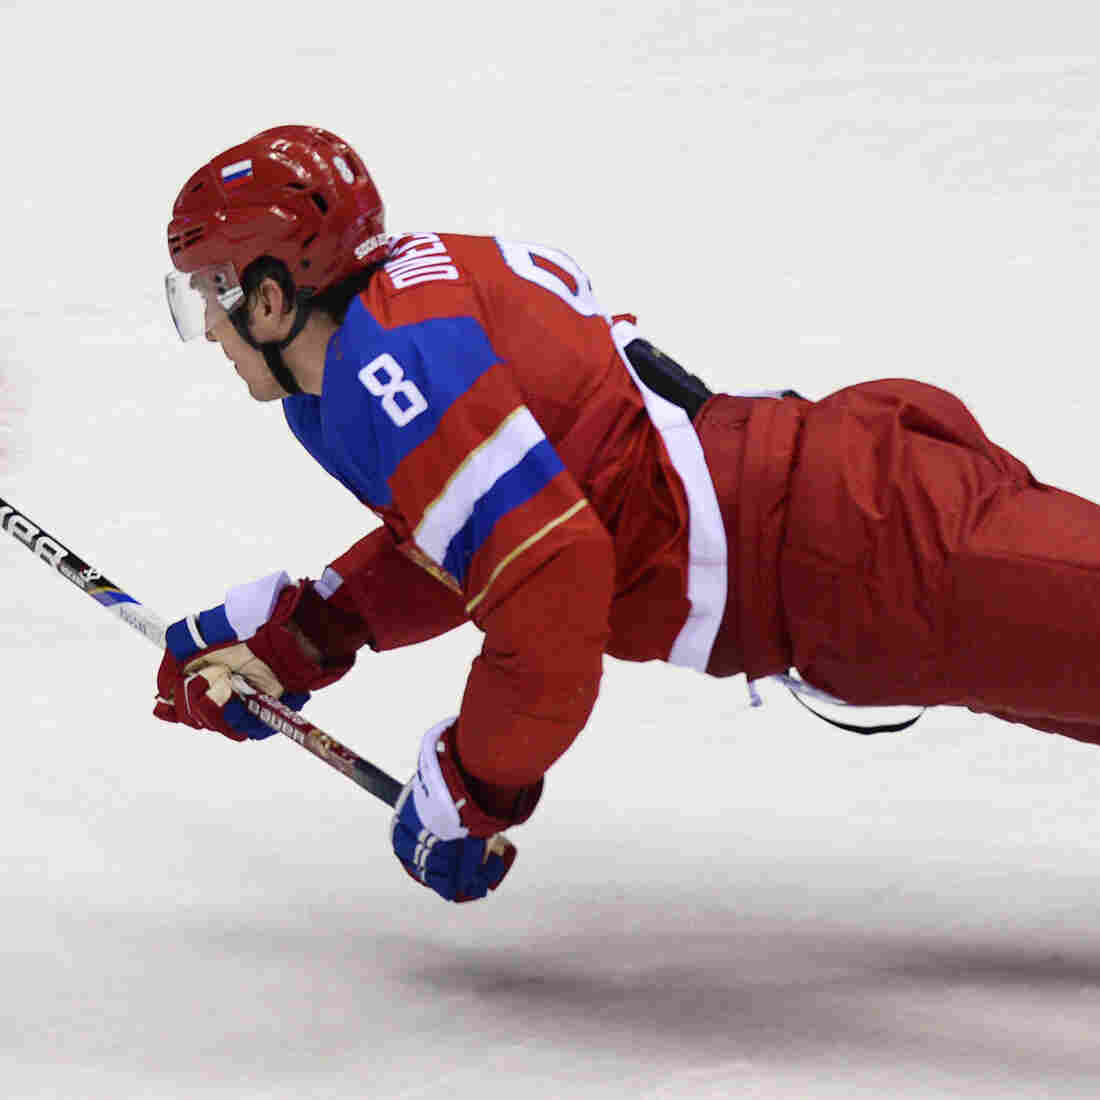 Olympic Photo Of The Day: The Floating Hockey Player